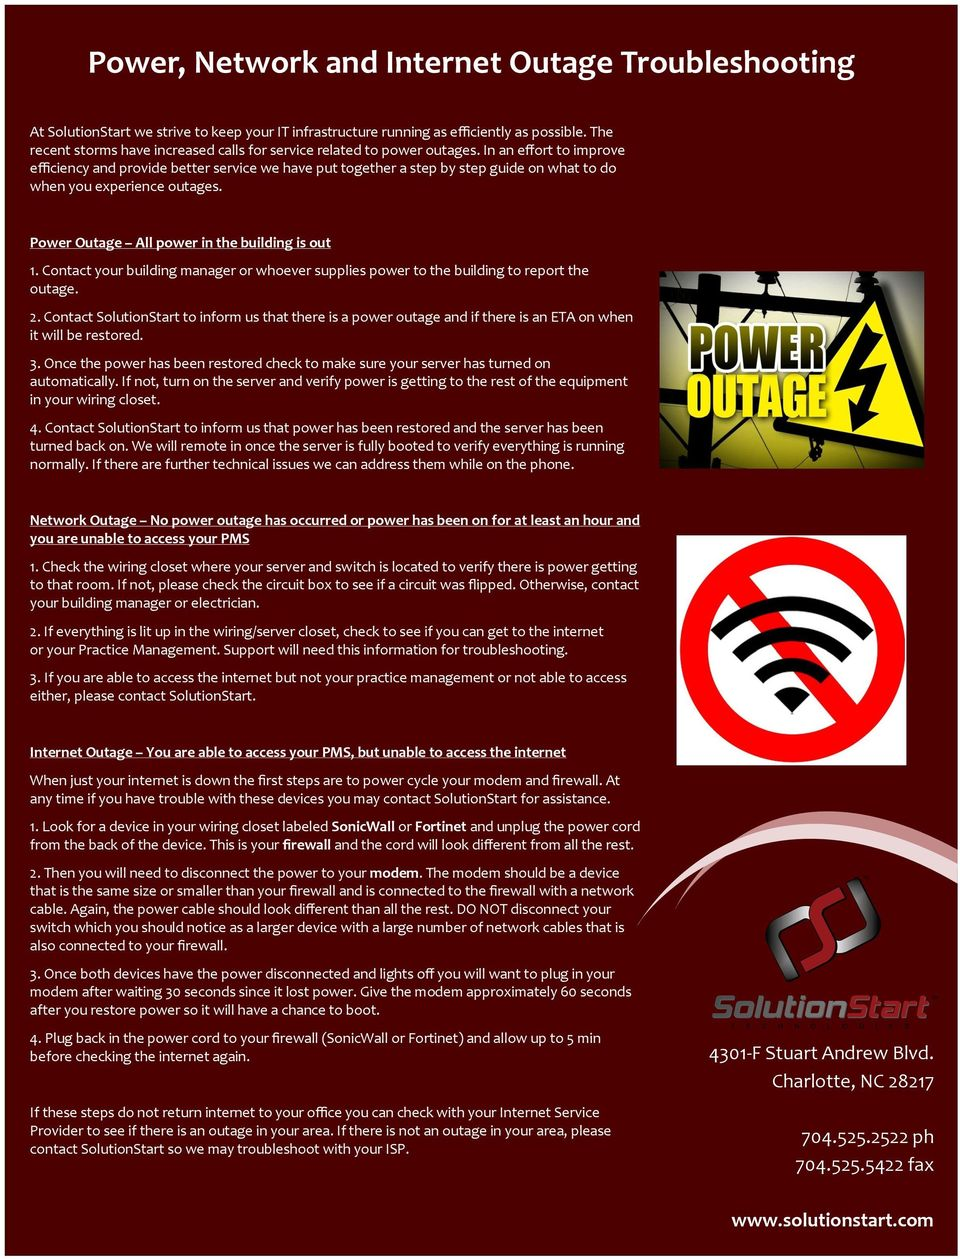 In an effort to improve efficiency and provide better service we have put together a step by step guide on what to do when you experience outages. Power Outage All power in the building is out 1.